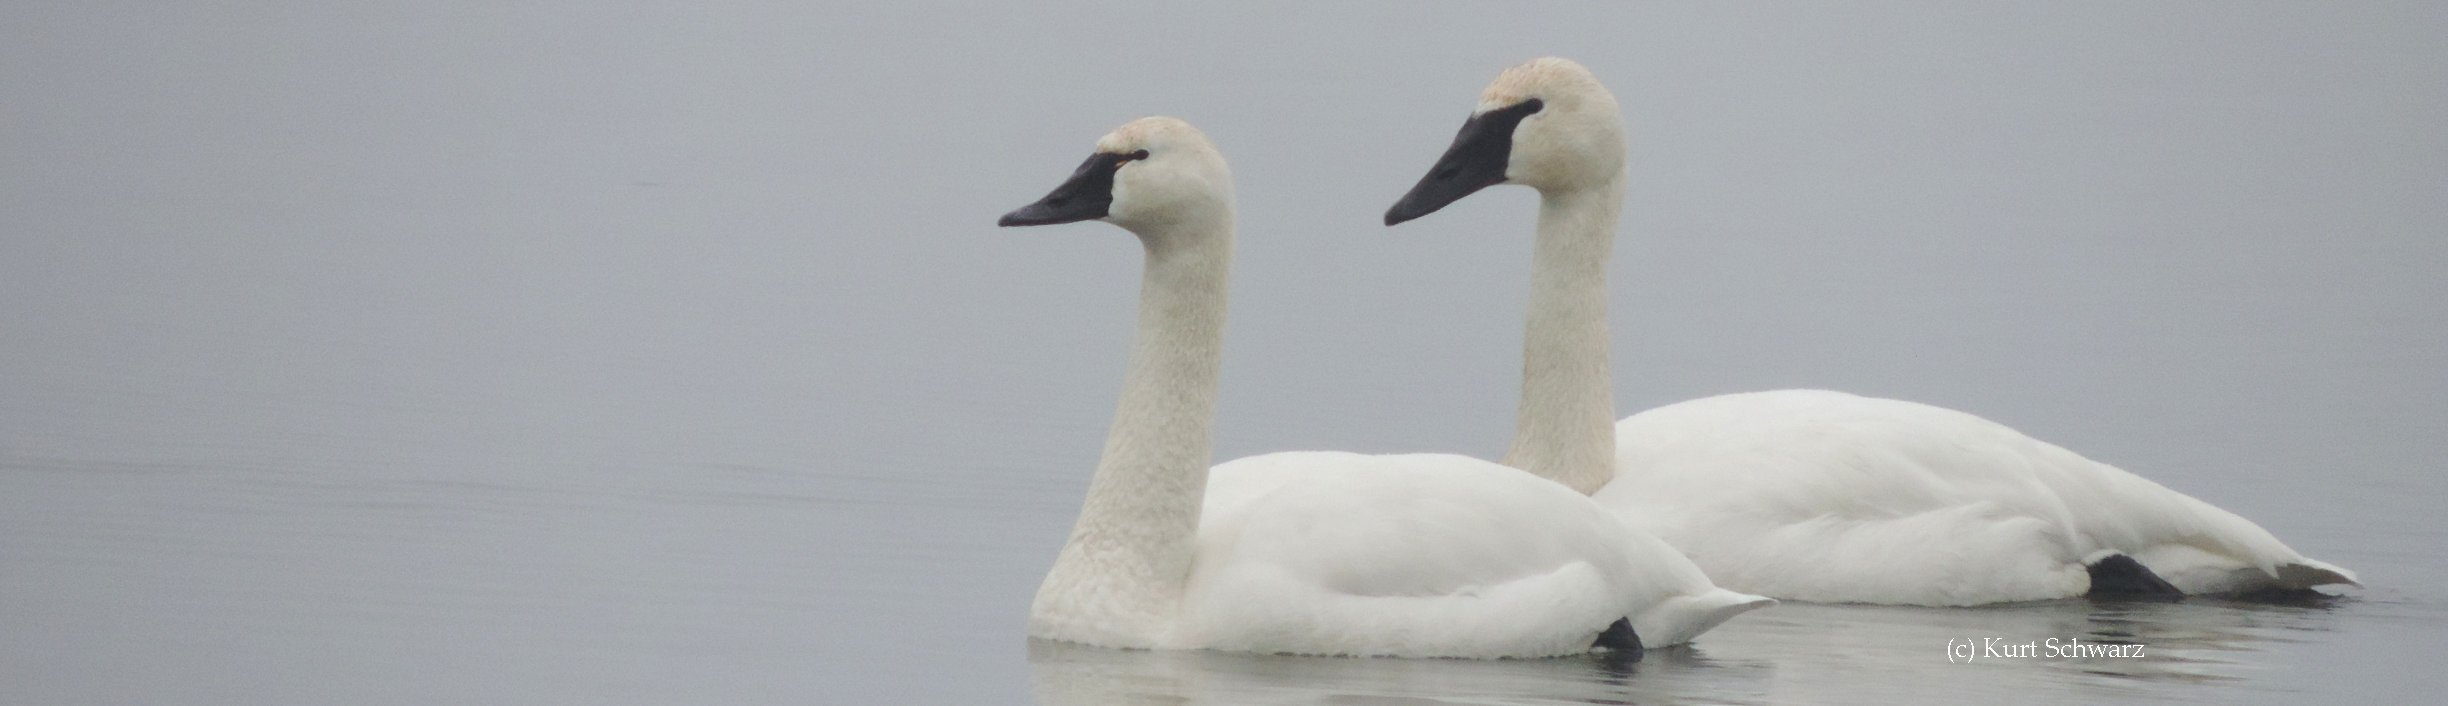 Head and bill shapes can help identify swan species including Trumpeter Swans, Tundra Swans and Mute Swans